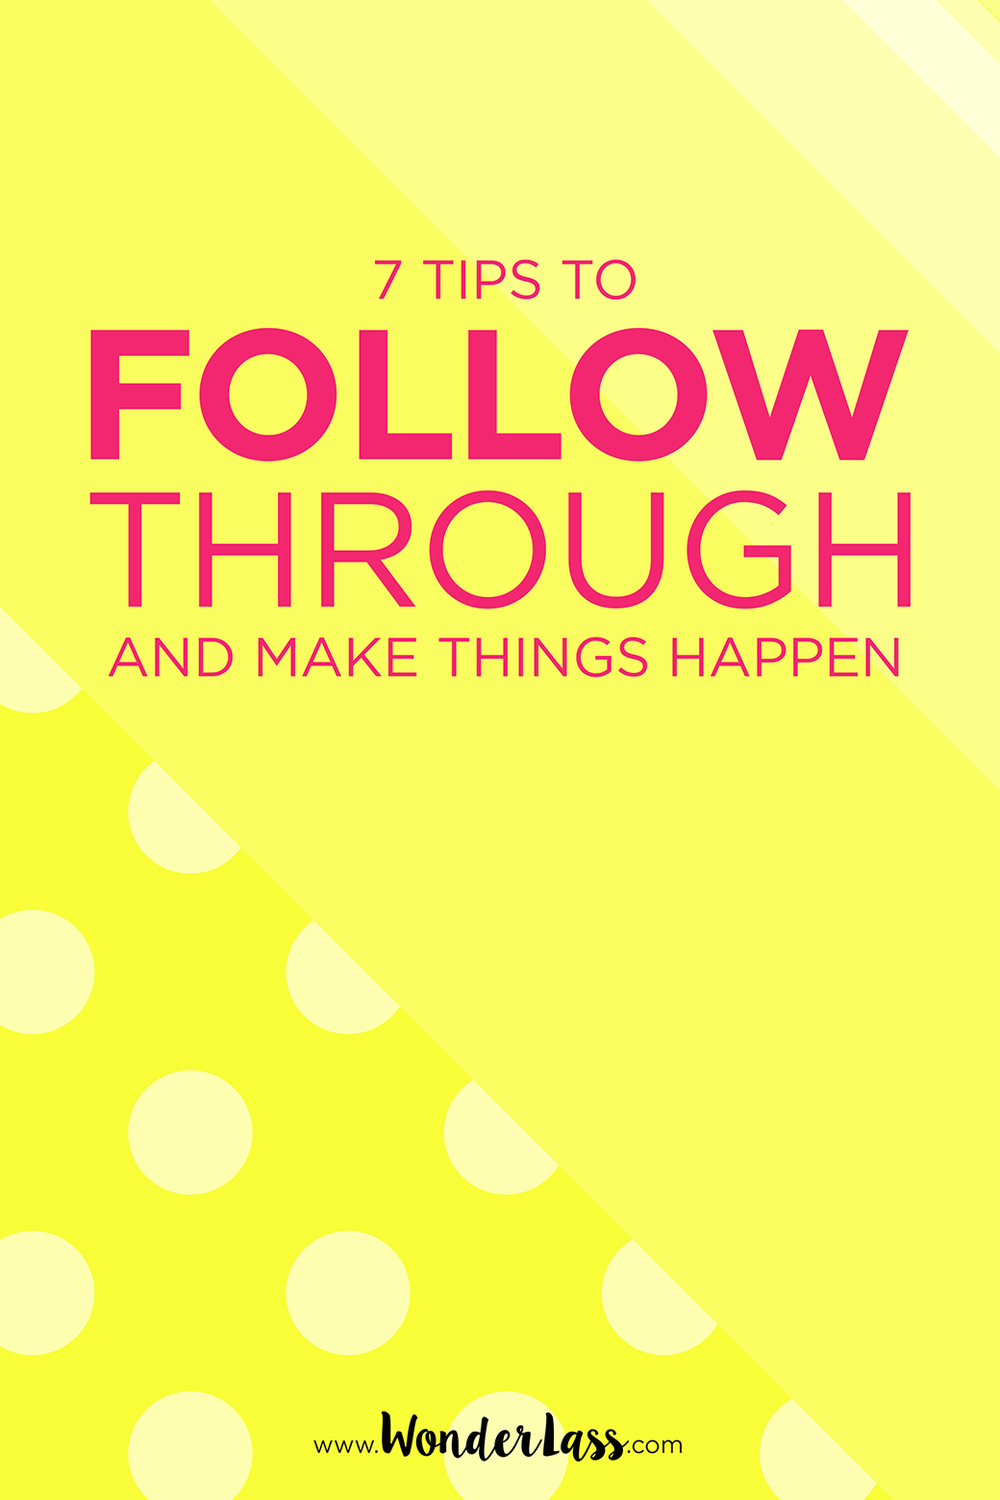 Want to learn how to actually get stuff done? Check out these 7 tips for following through to MAKE THINGS HAPPEN!